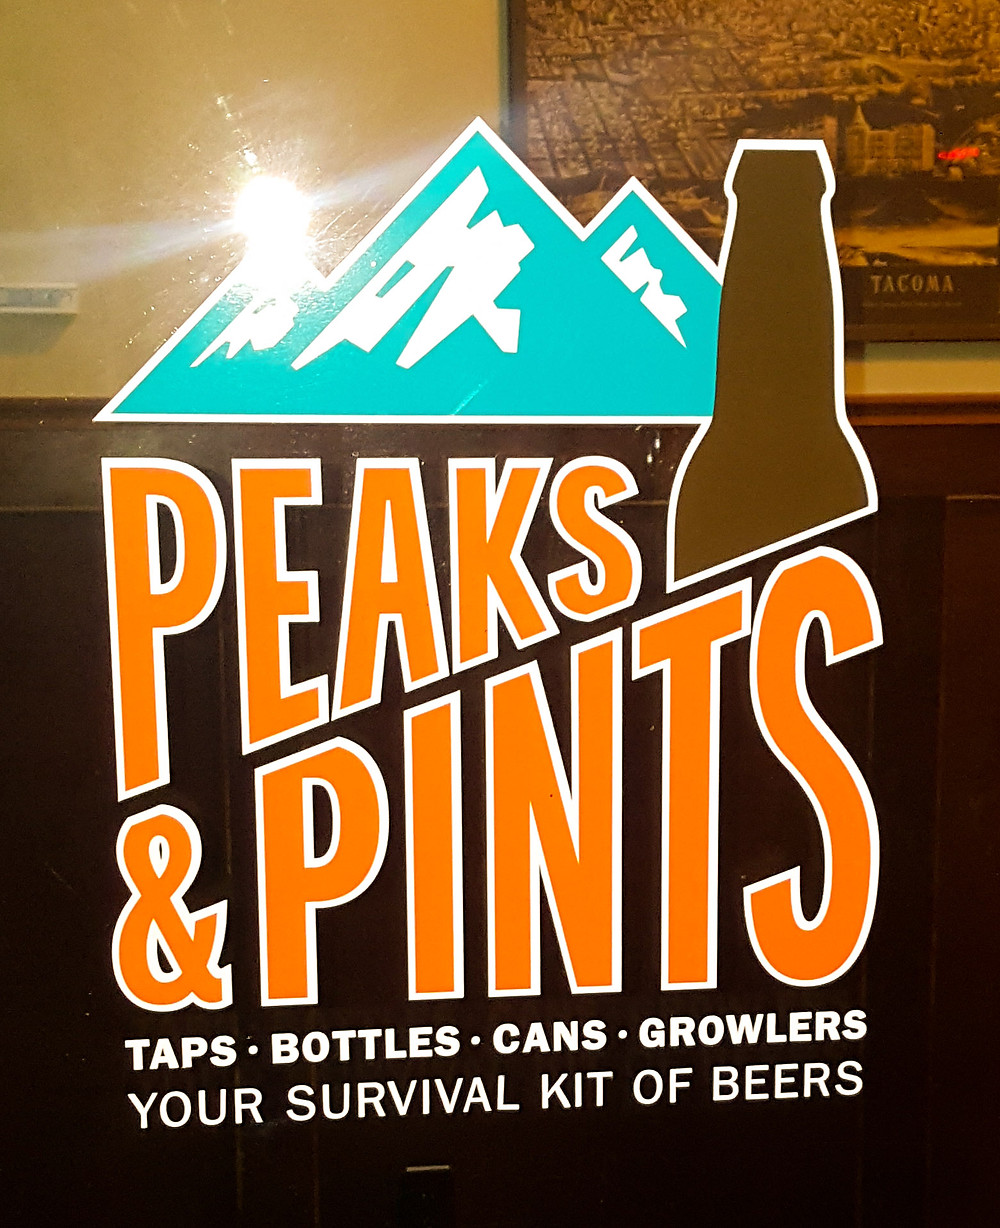 Peaks and Pints Tacoma